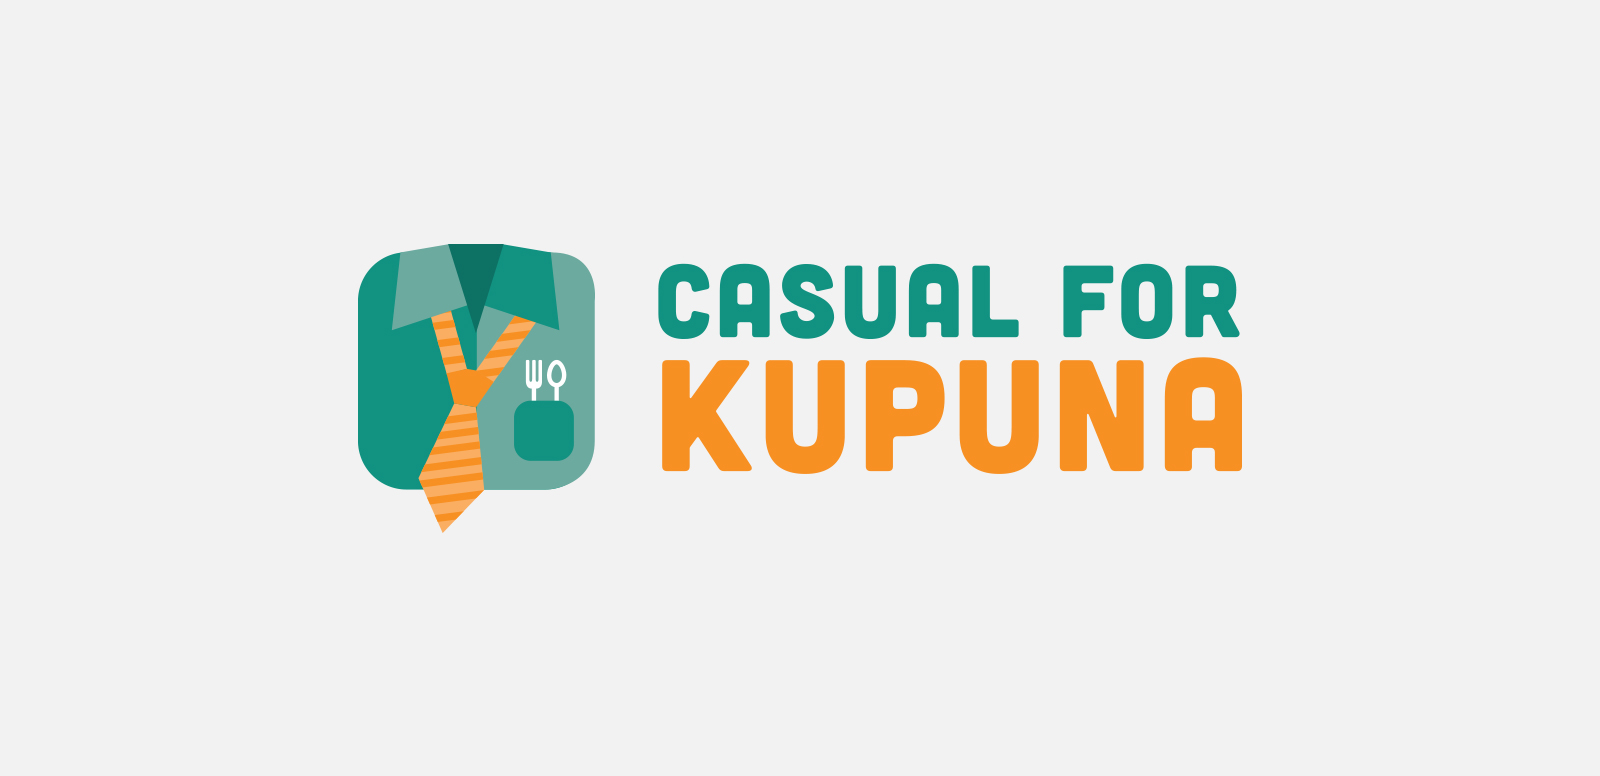 LANAKILA PACIFIC: CASUAL FOR KUPUNA  Logo design for a fundraiser presented by Lanakila Pacific Meals on Wheels. Done at Design Asylum, 2015.